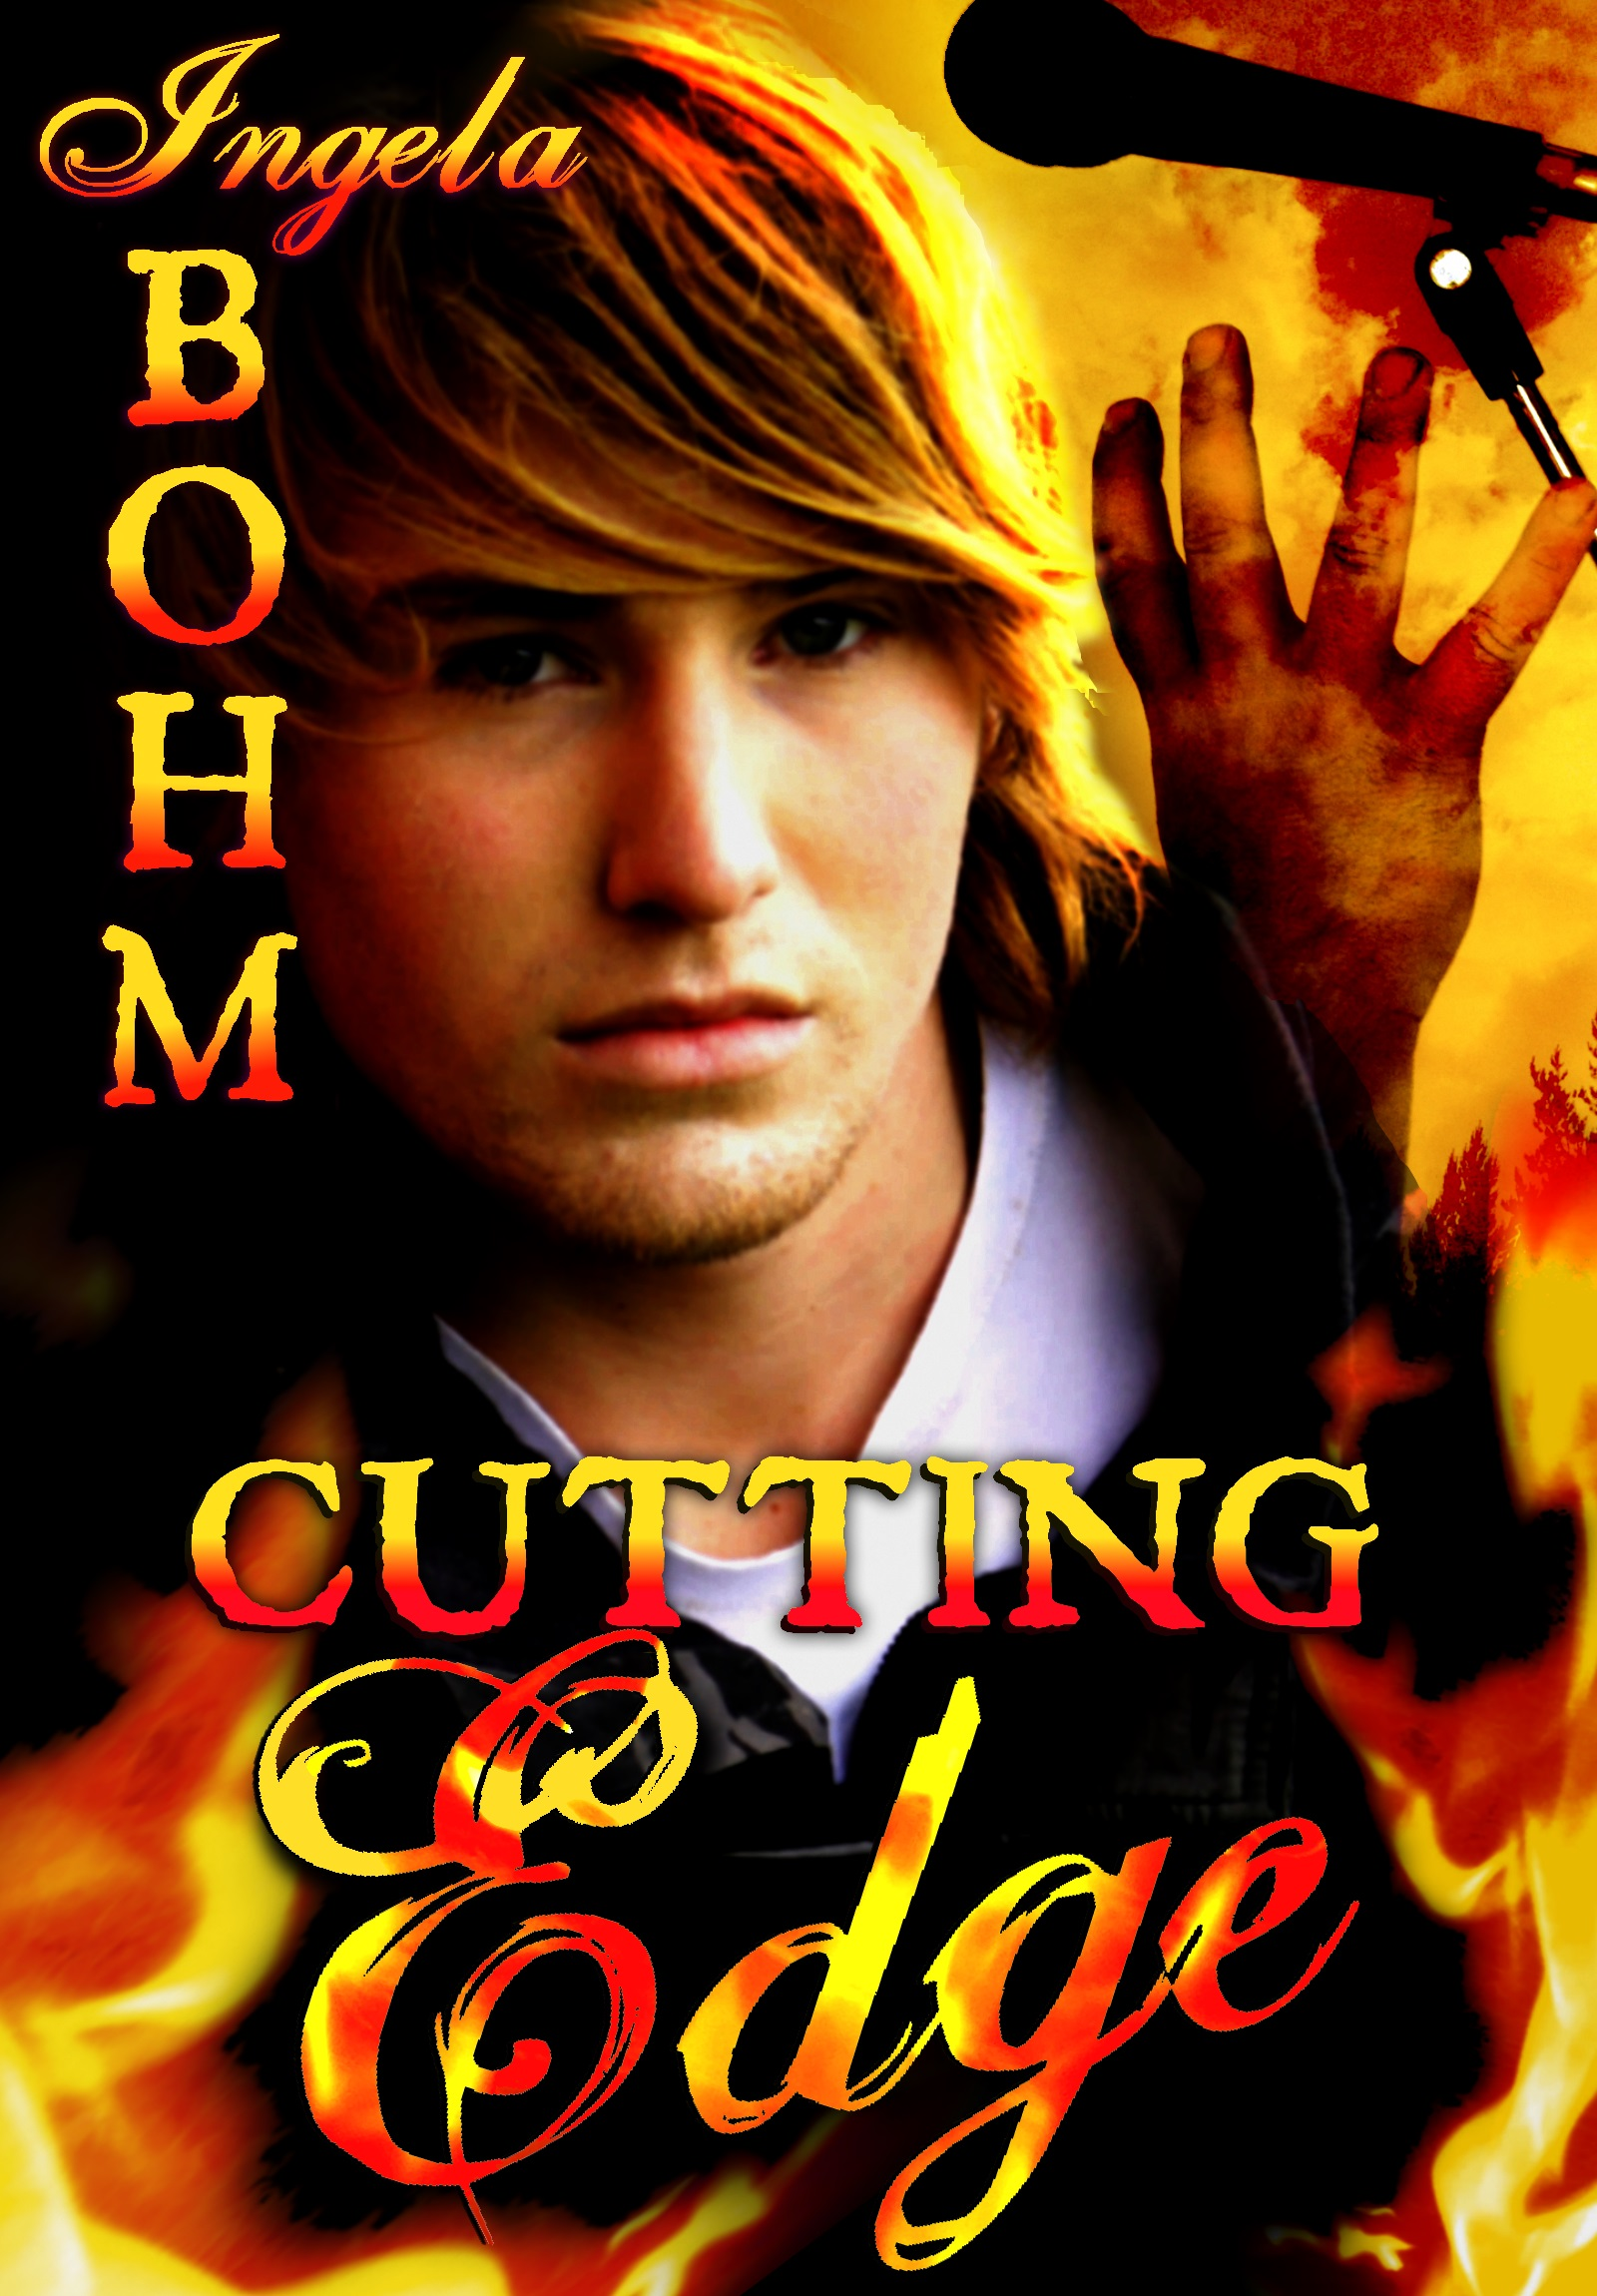 Guest Post and Giveaway: Cutting Edge by Ingela Bohm